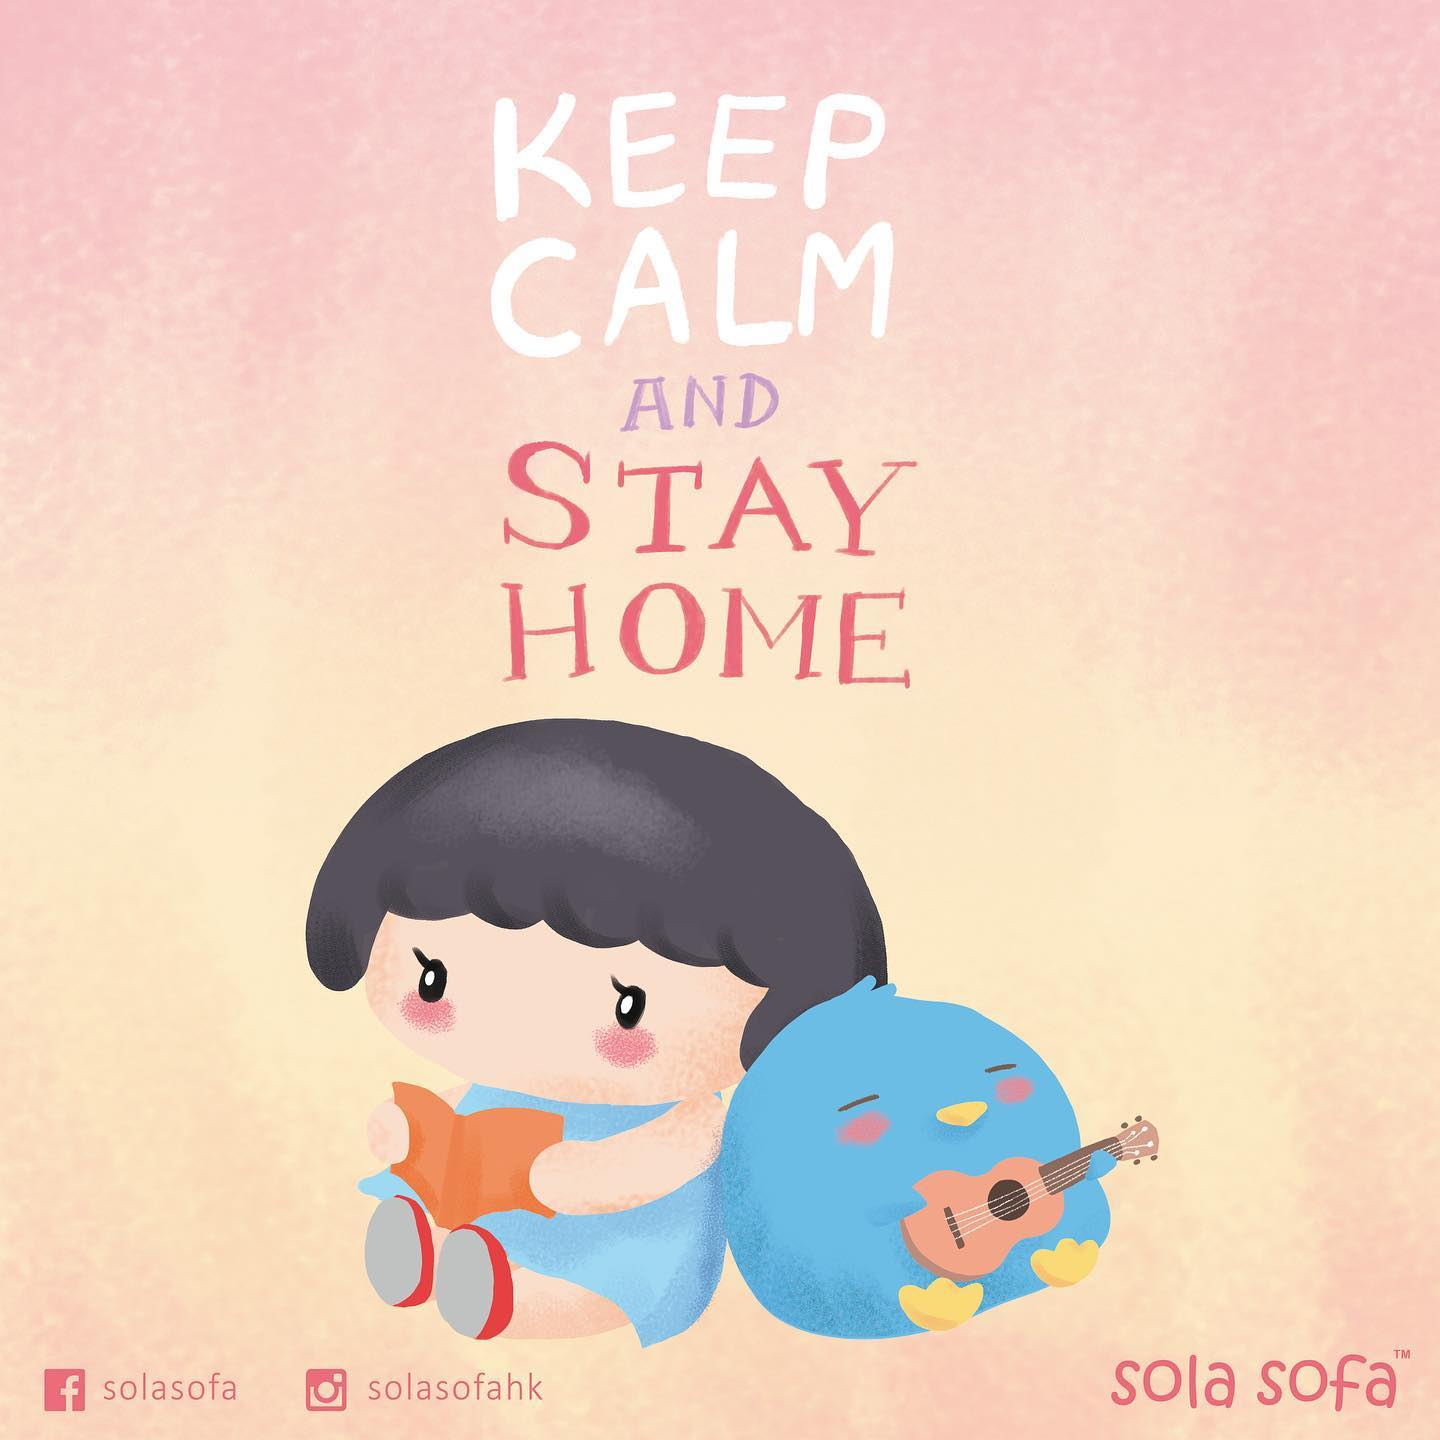 sola sofa 小劇場:Keep calm and stay home